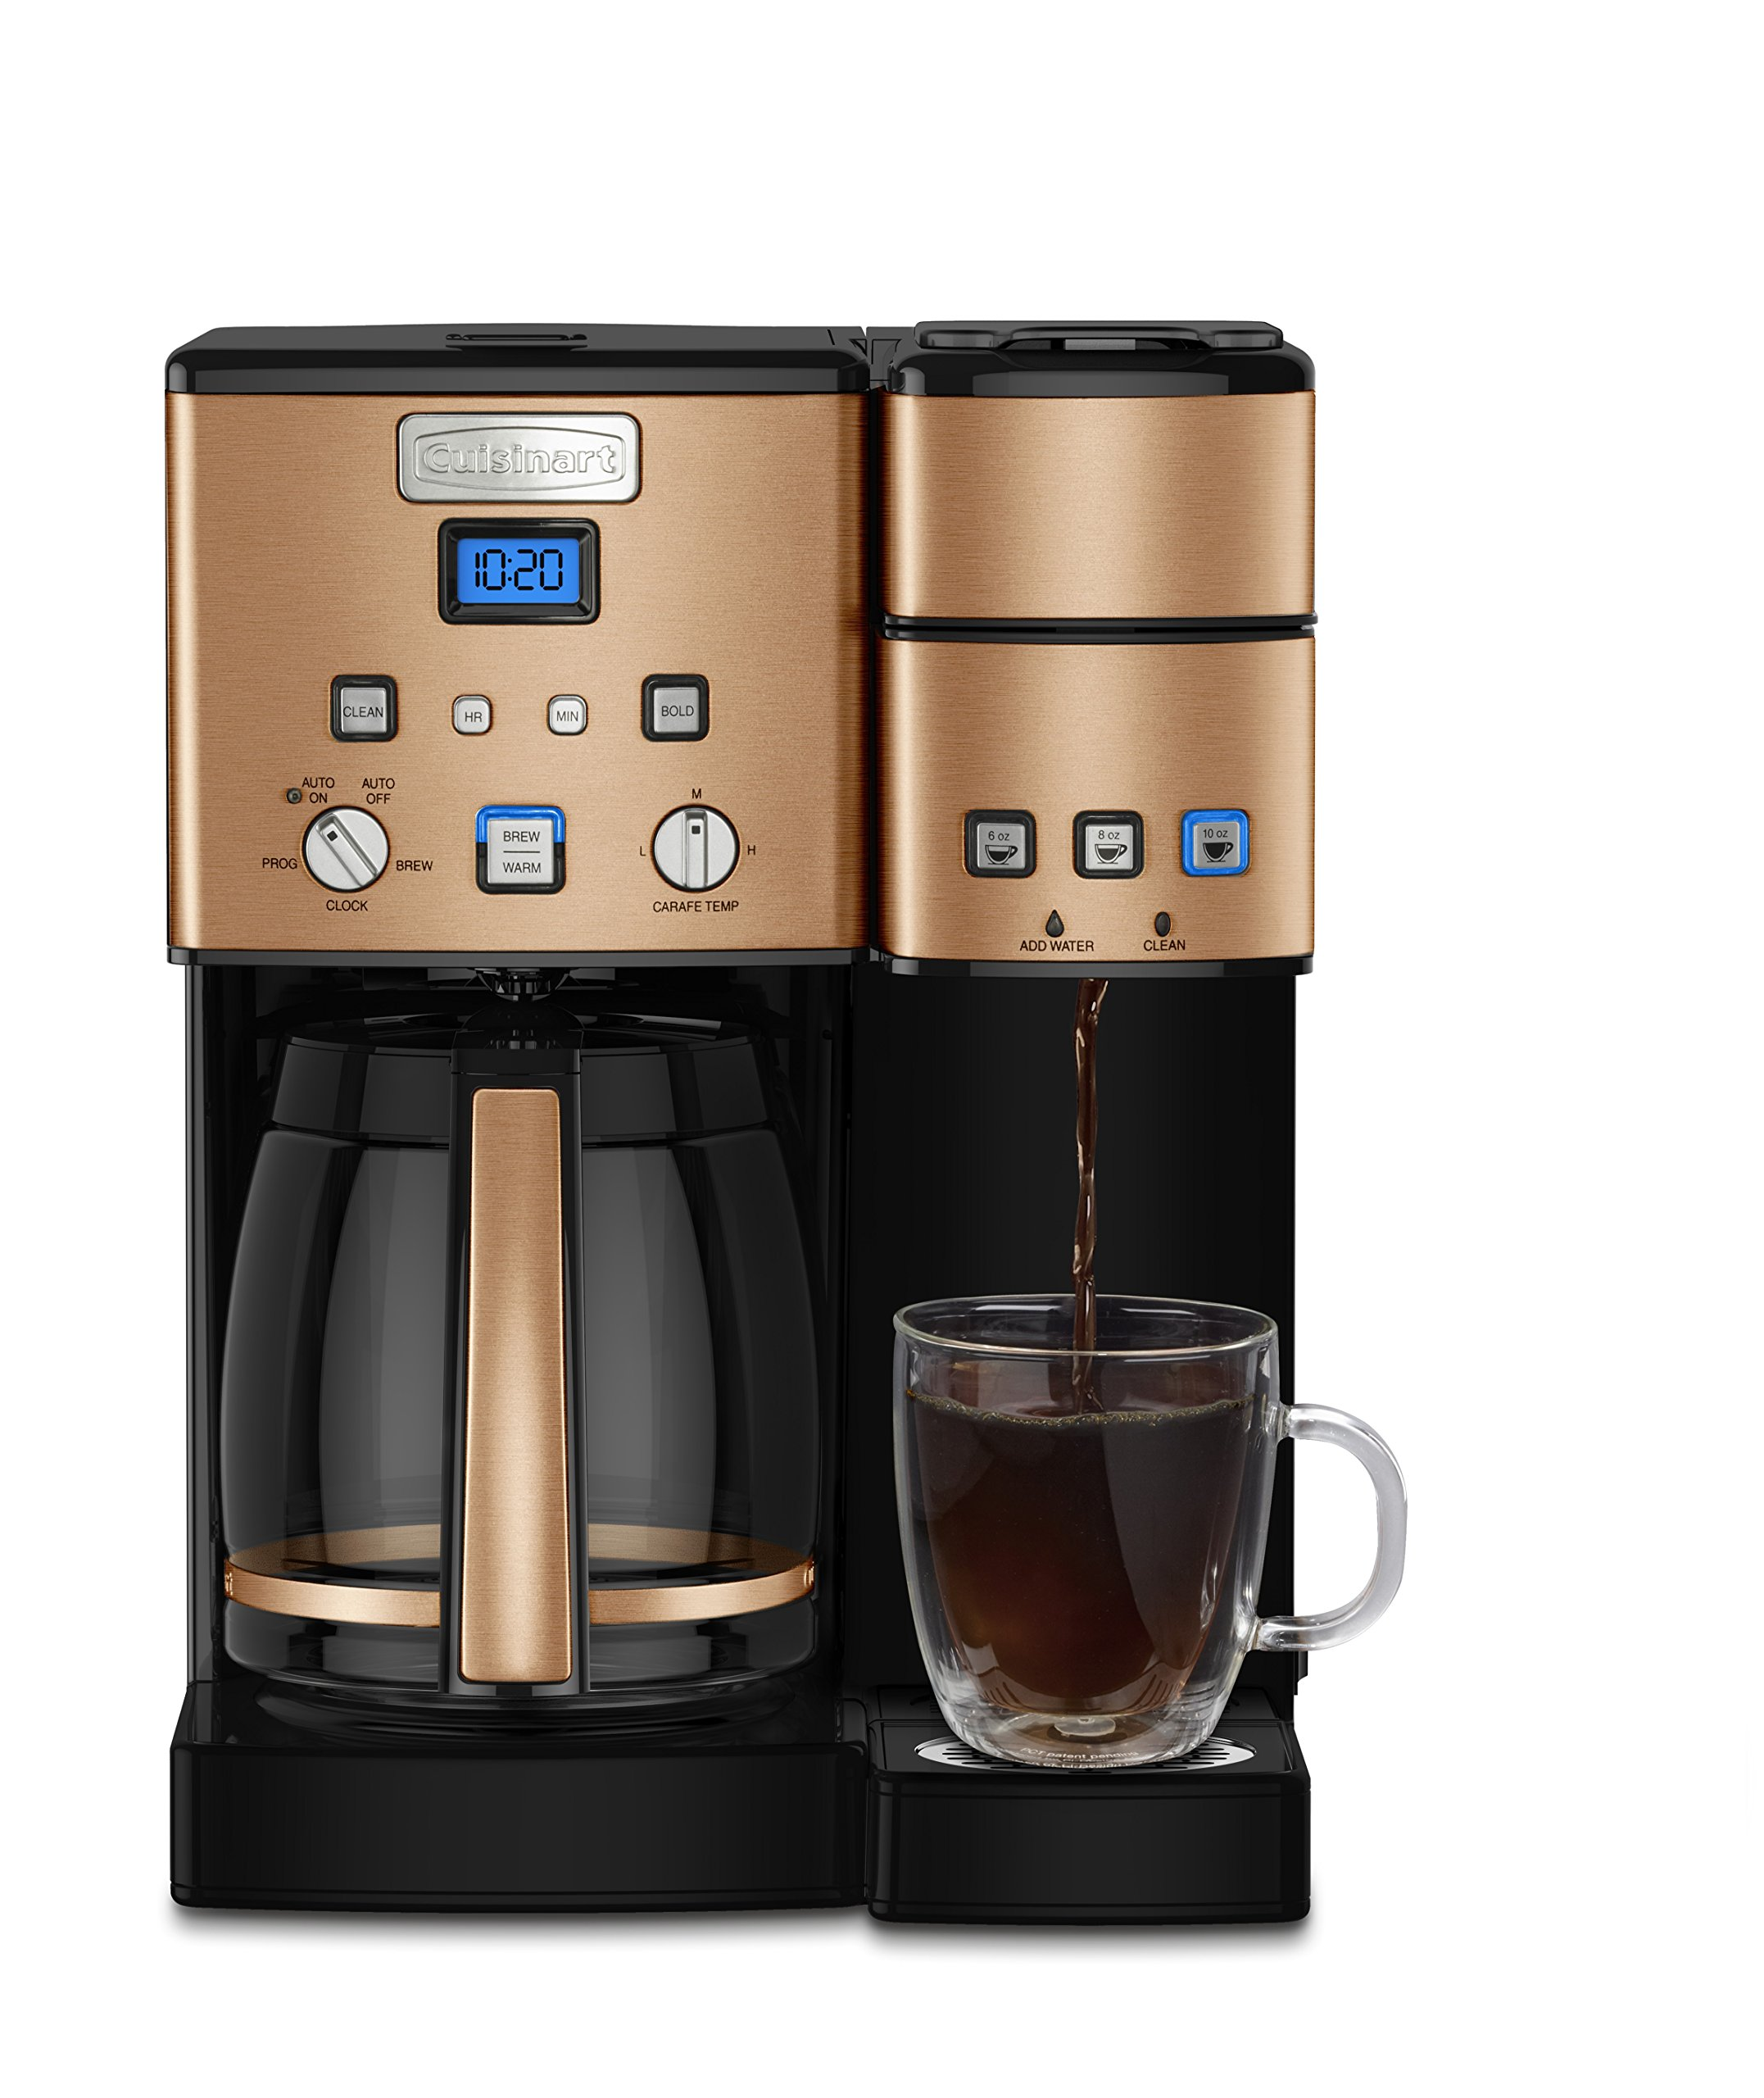 Buyrcom Cuisinart Ss 15cp 12 Cup Coffee Maker And Single Serve